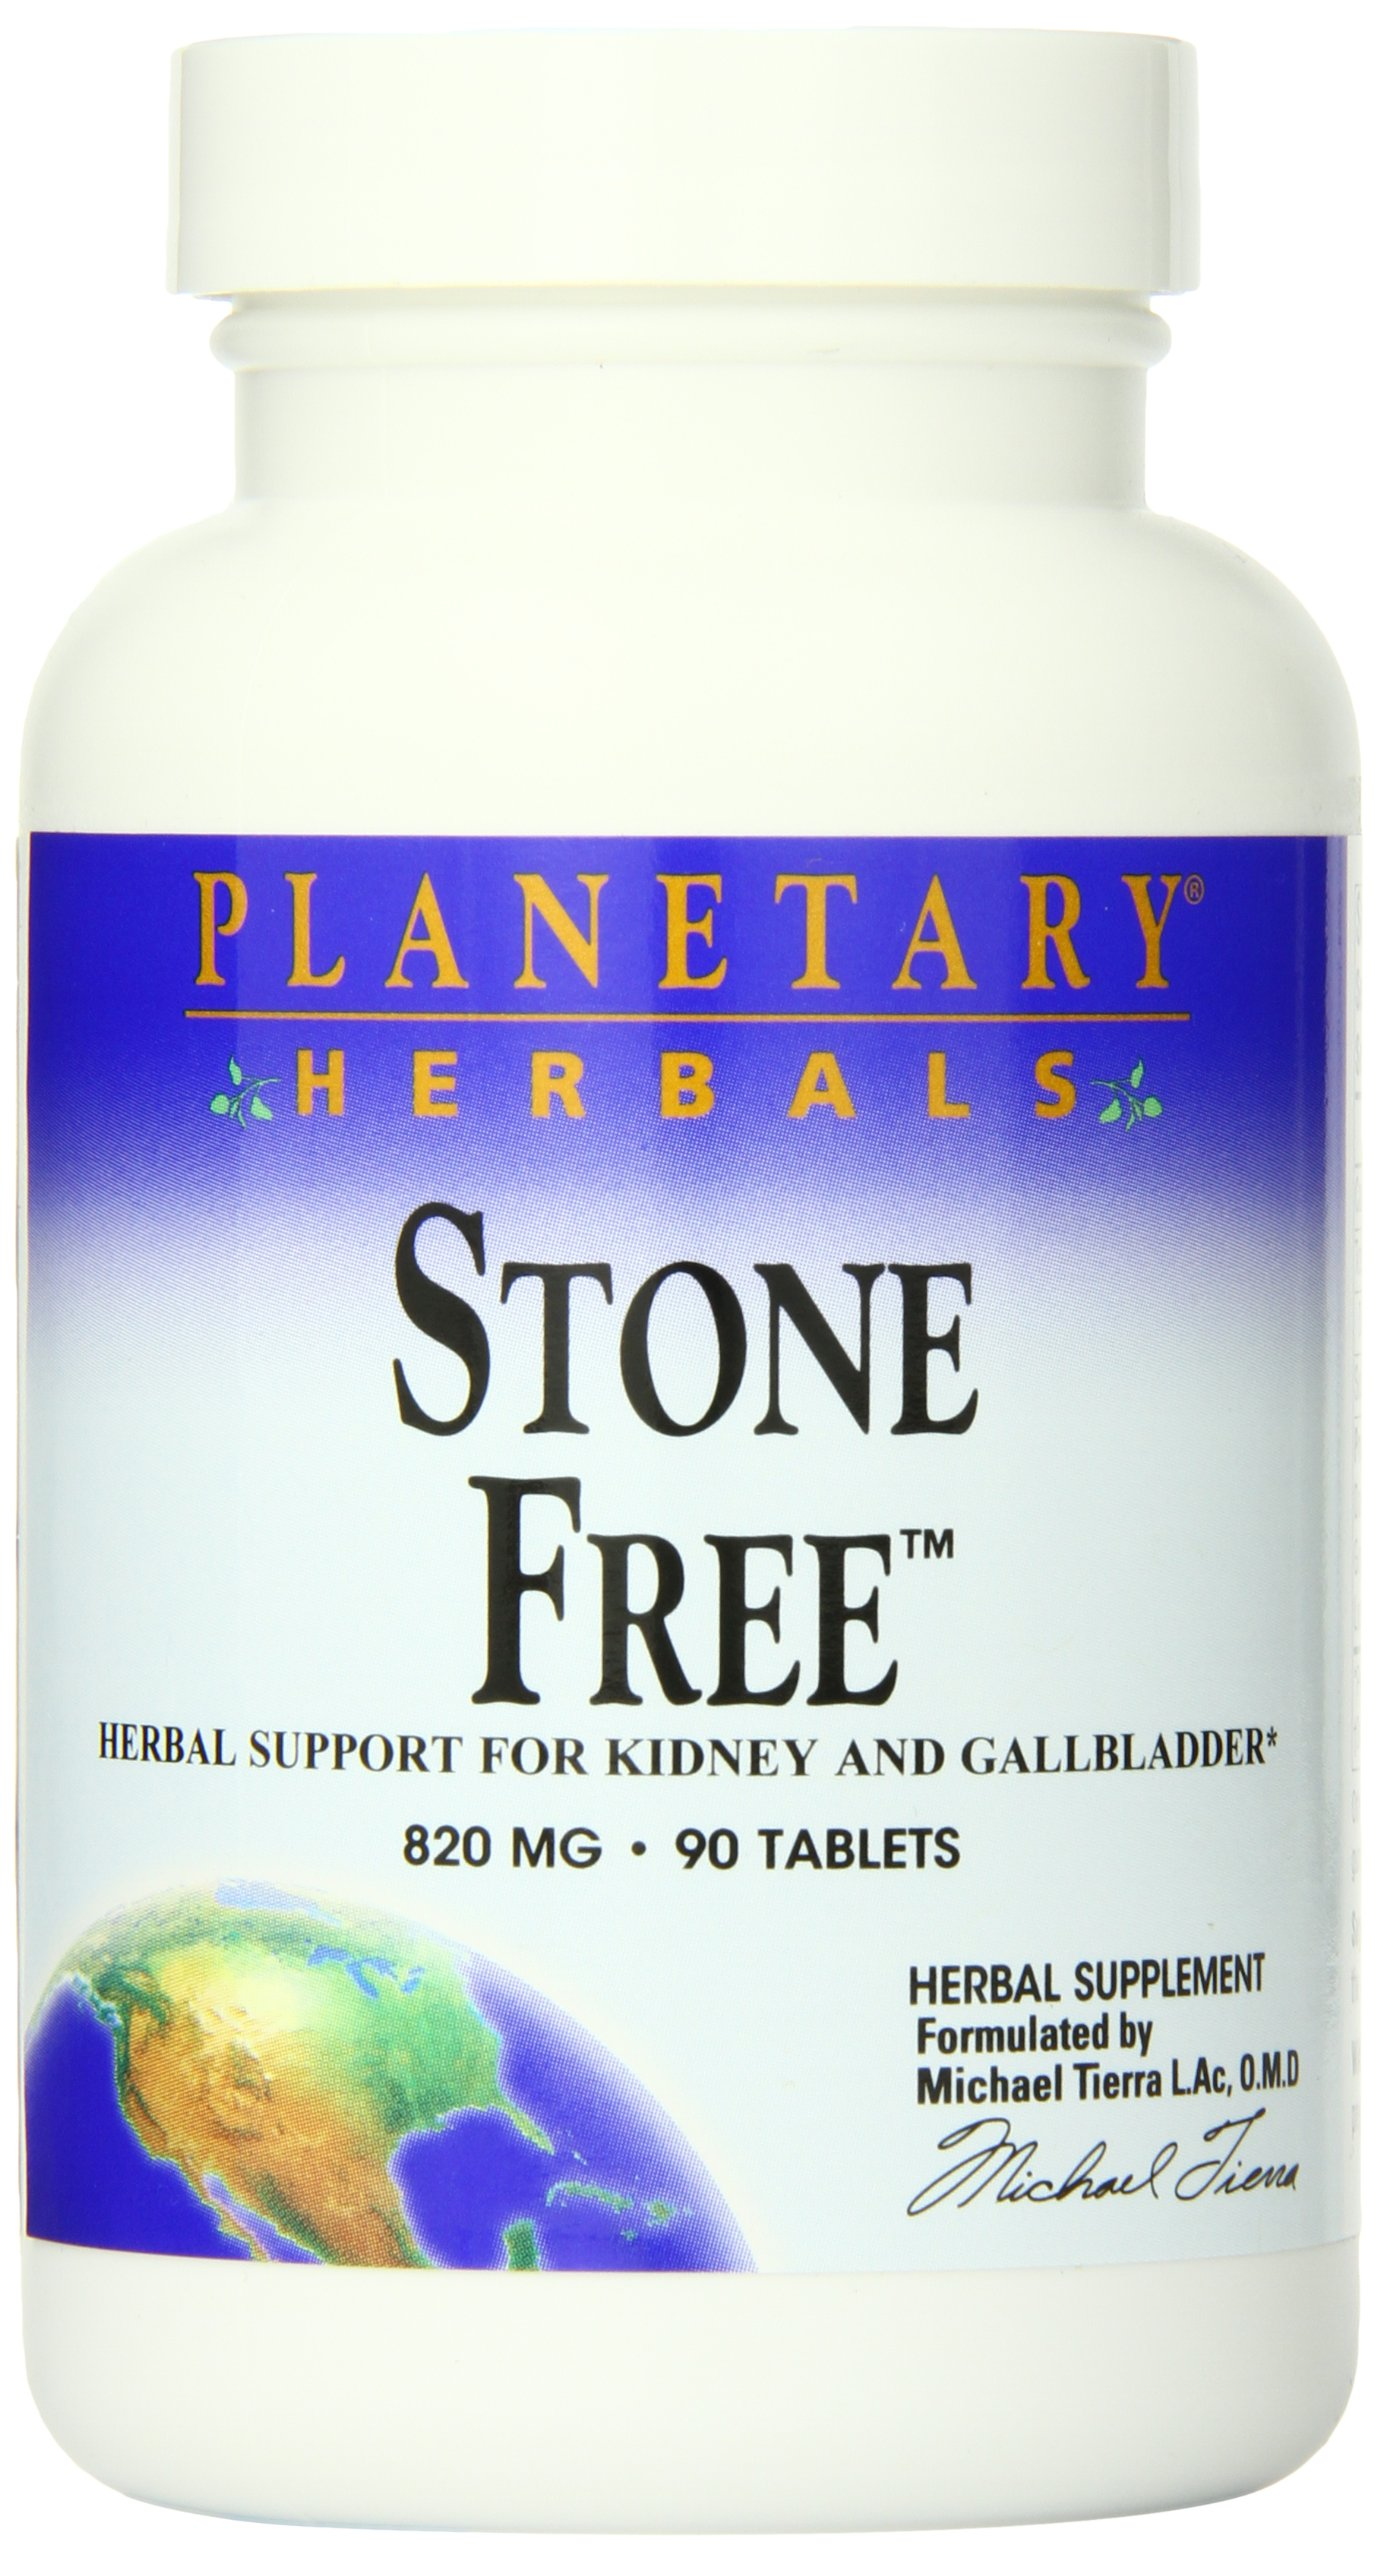 Planetary Herbals Stone Free 820mg, Herbal Support for Kidney and Gallbladder, 90 tablets